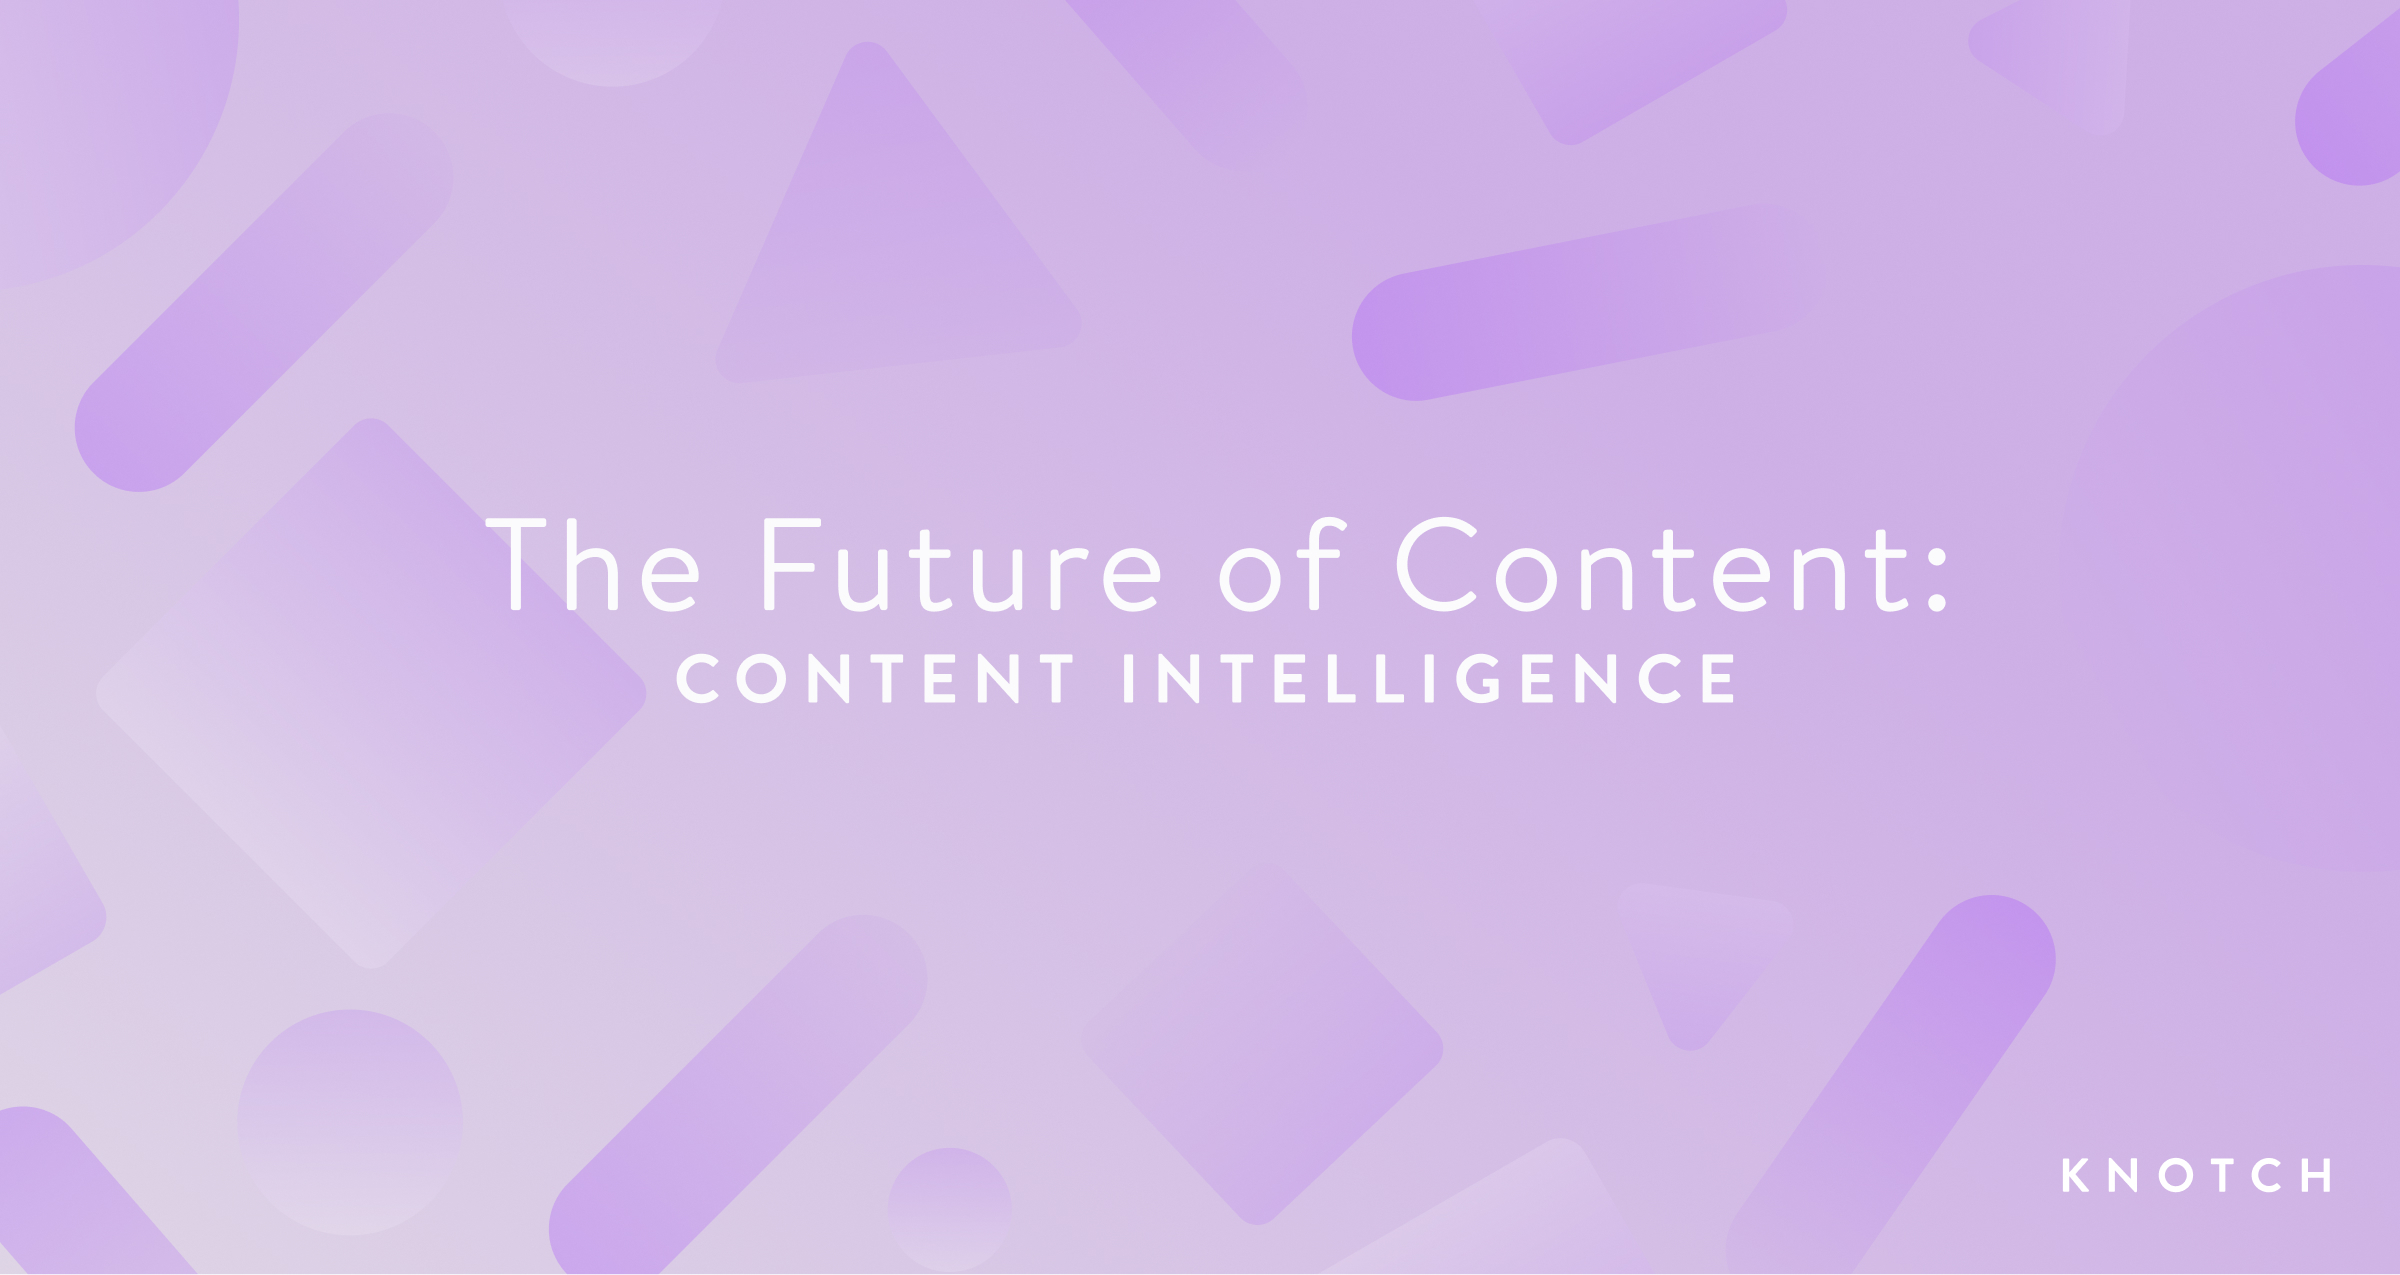 The Future of Content: Content Intelligence